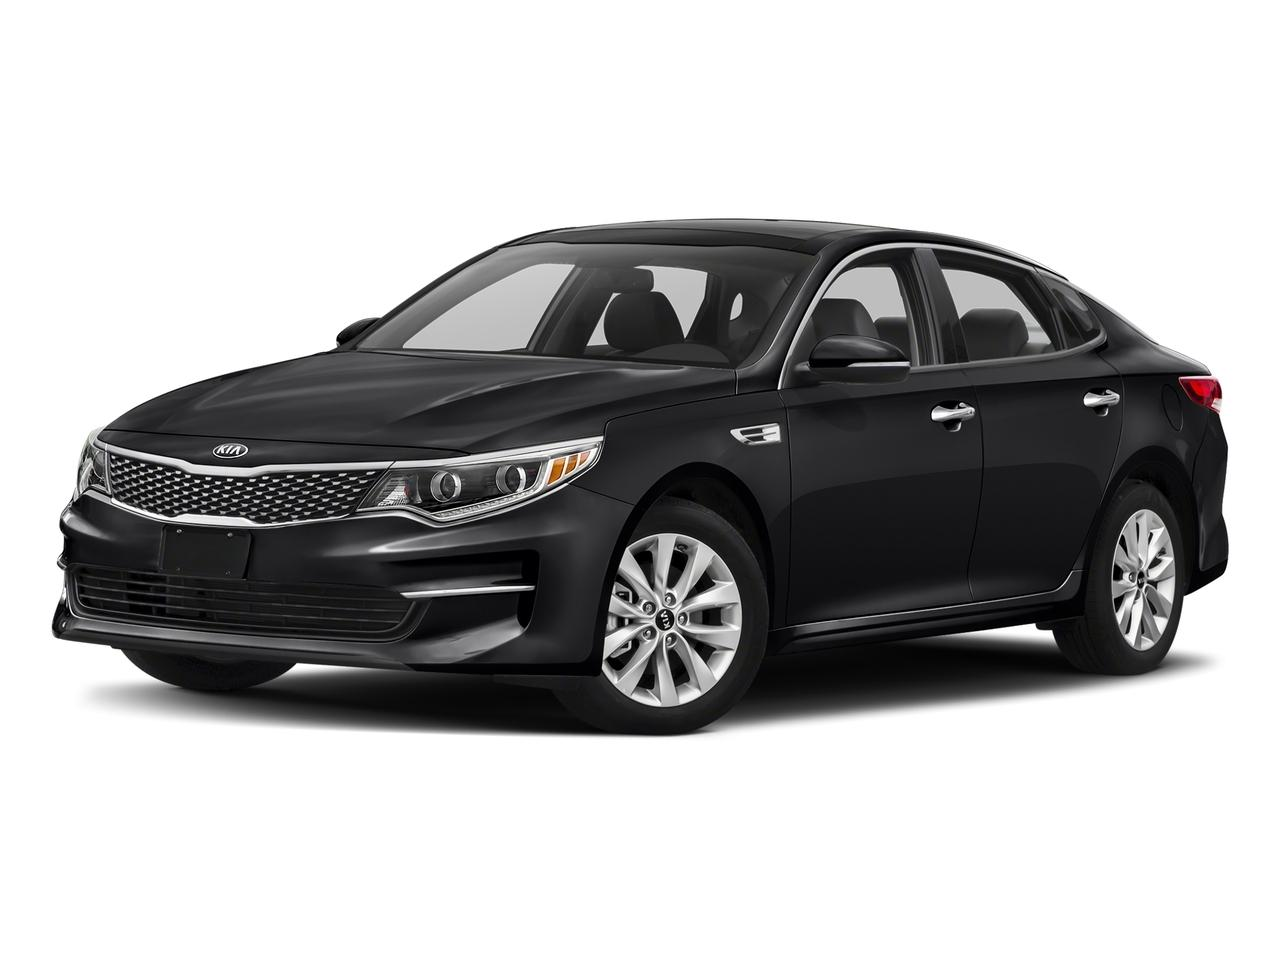 2017 Kia Optima Vehicle Photo in Corpus Christi, TX 78411